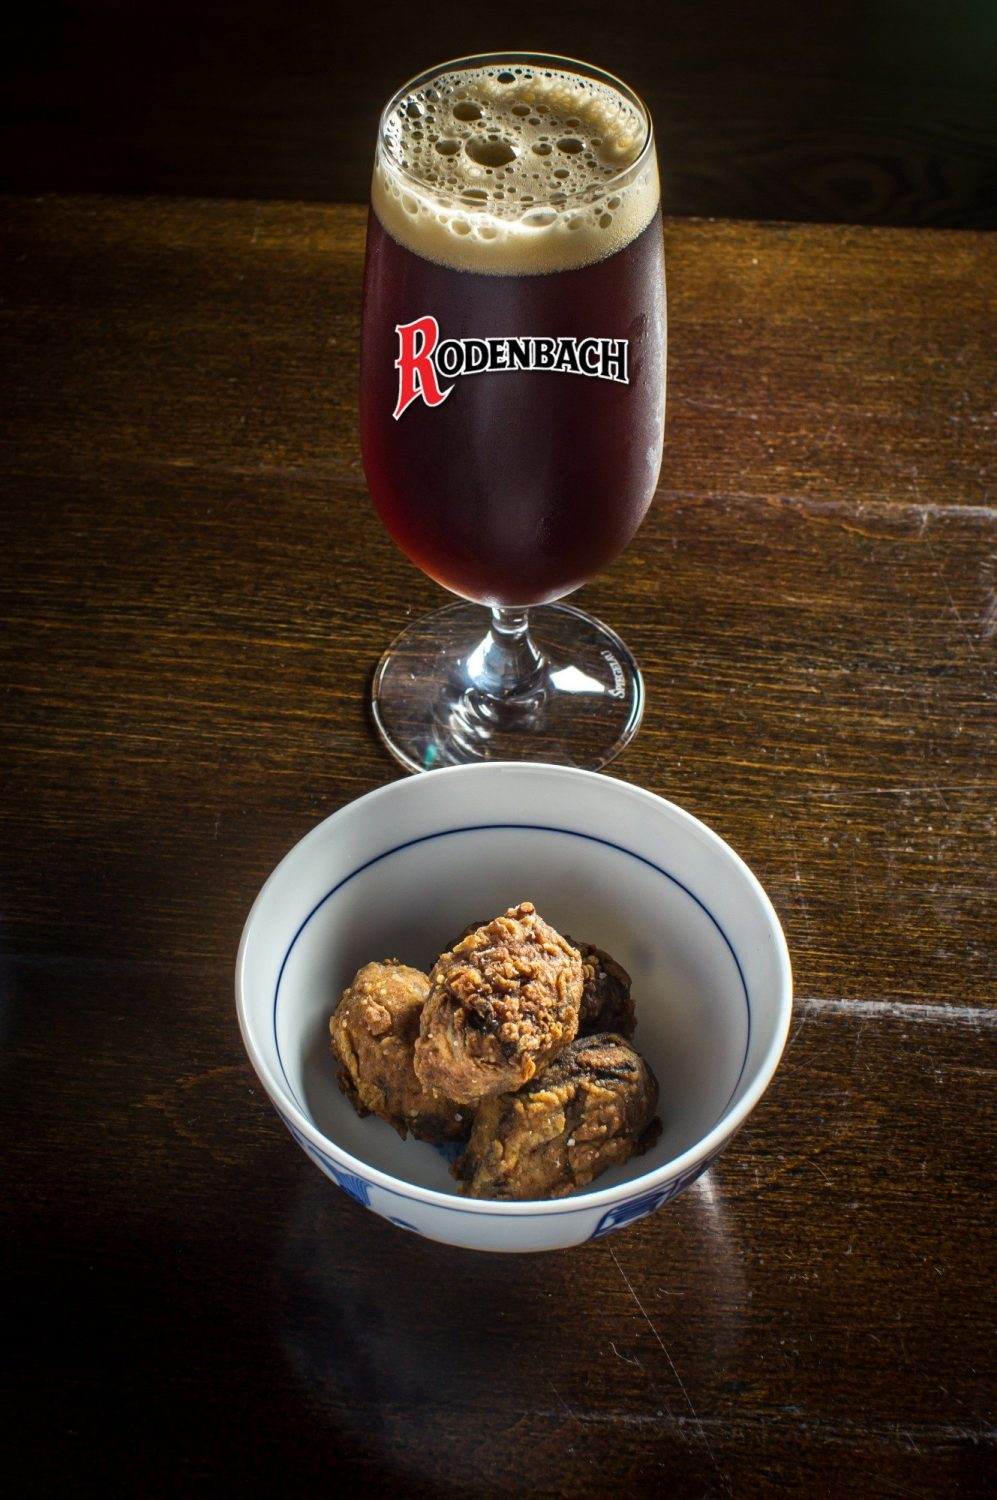 Rodenbach's Rudi Ghequire & Fung Tu's Chef Jonathan Wu talk food, beer, New York & more